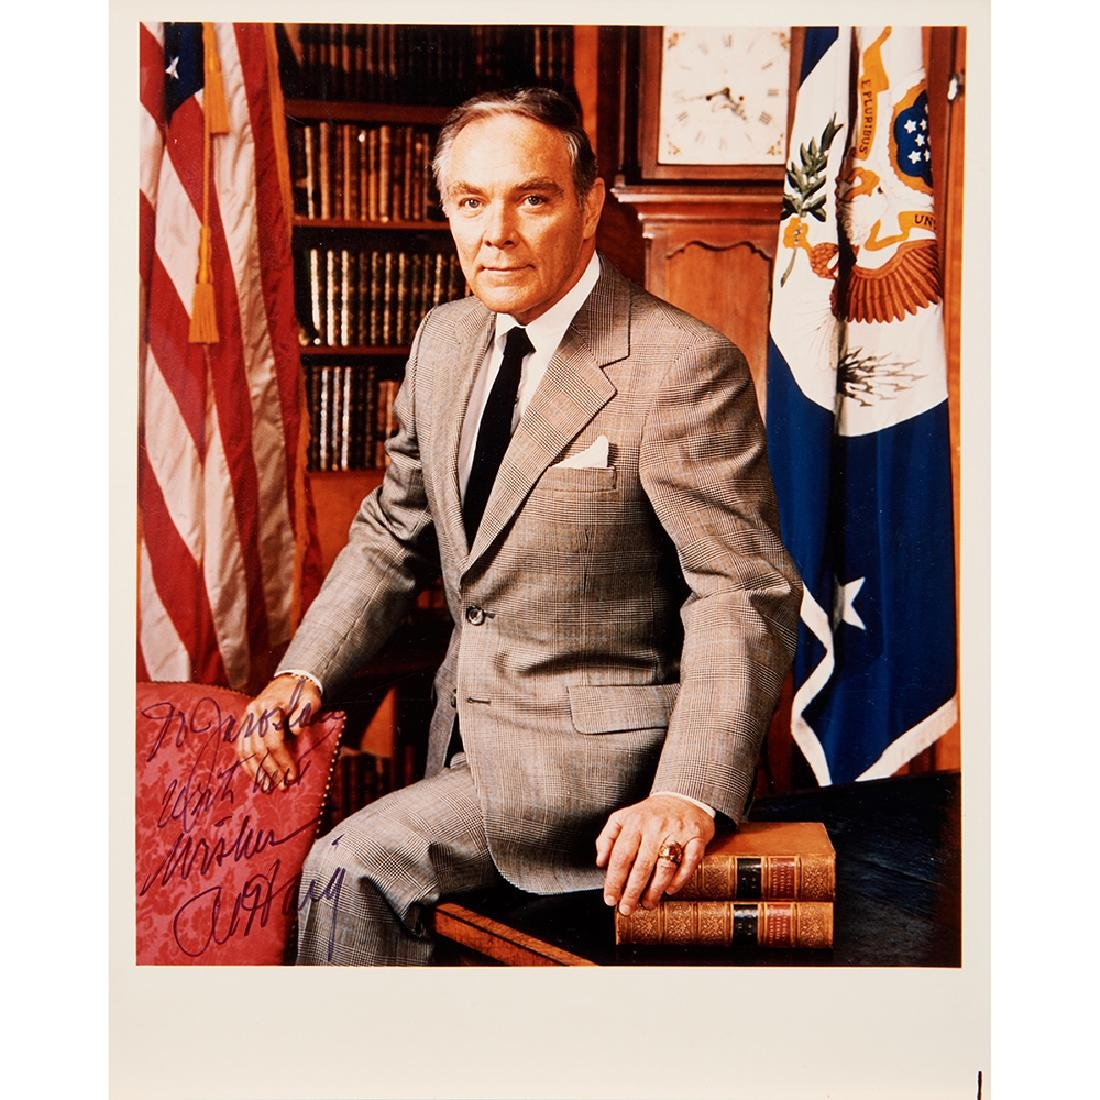 Watergate, (3) Signed Letters and (4) Photographs